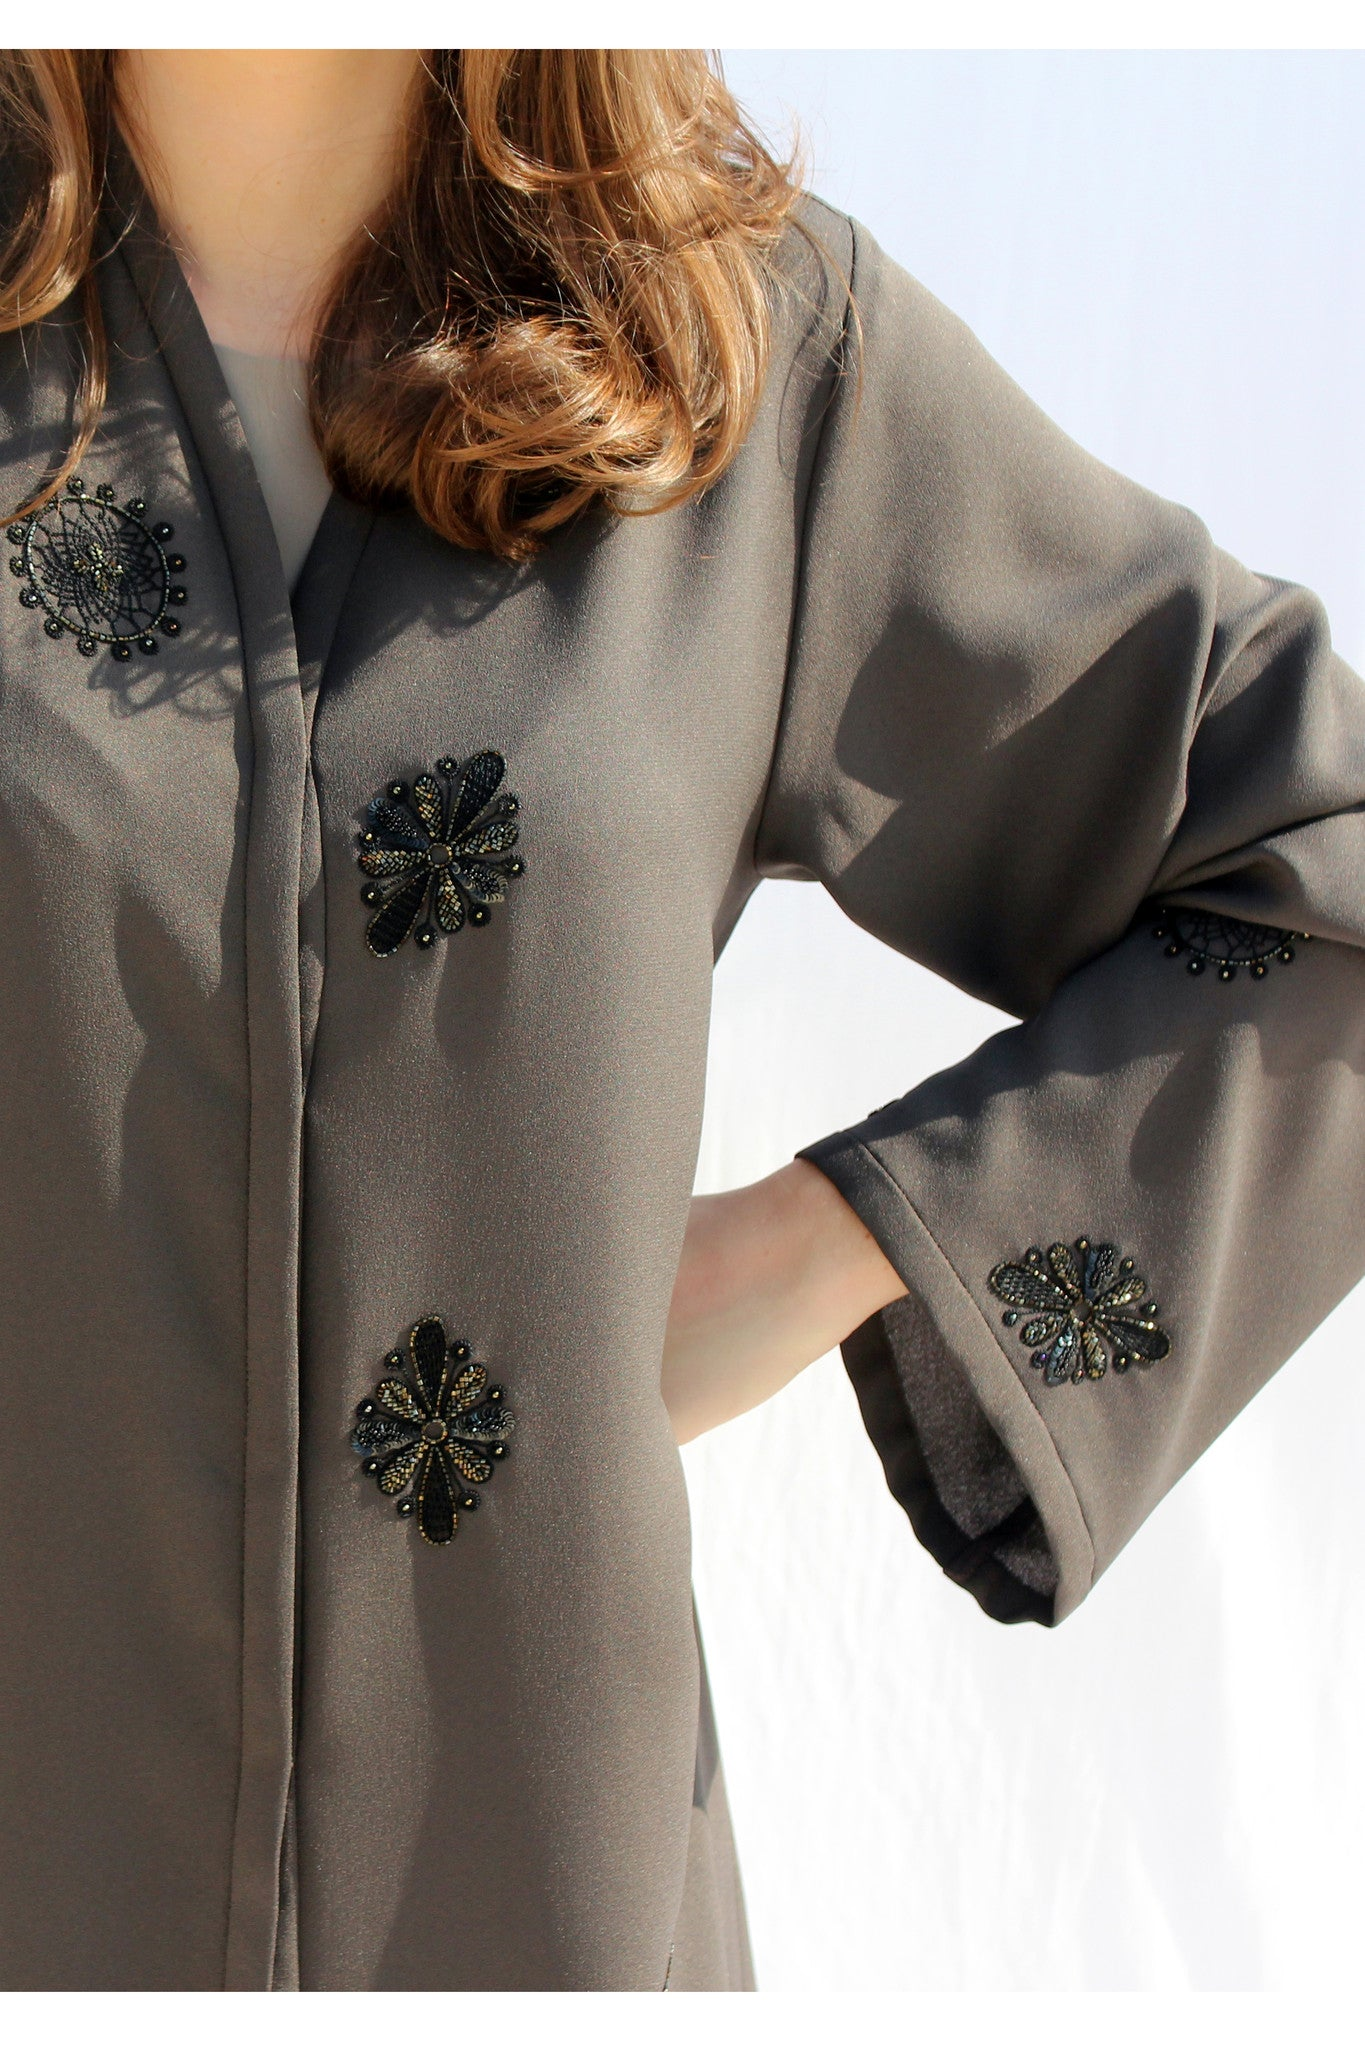 ARIELLE - ALX2109Z - Arabesque Classic cut abaya shape in full colored fabric embellished with 2 different motifs in hand embroidery with thread, sequins and beads on sleeves and scattered on front.